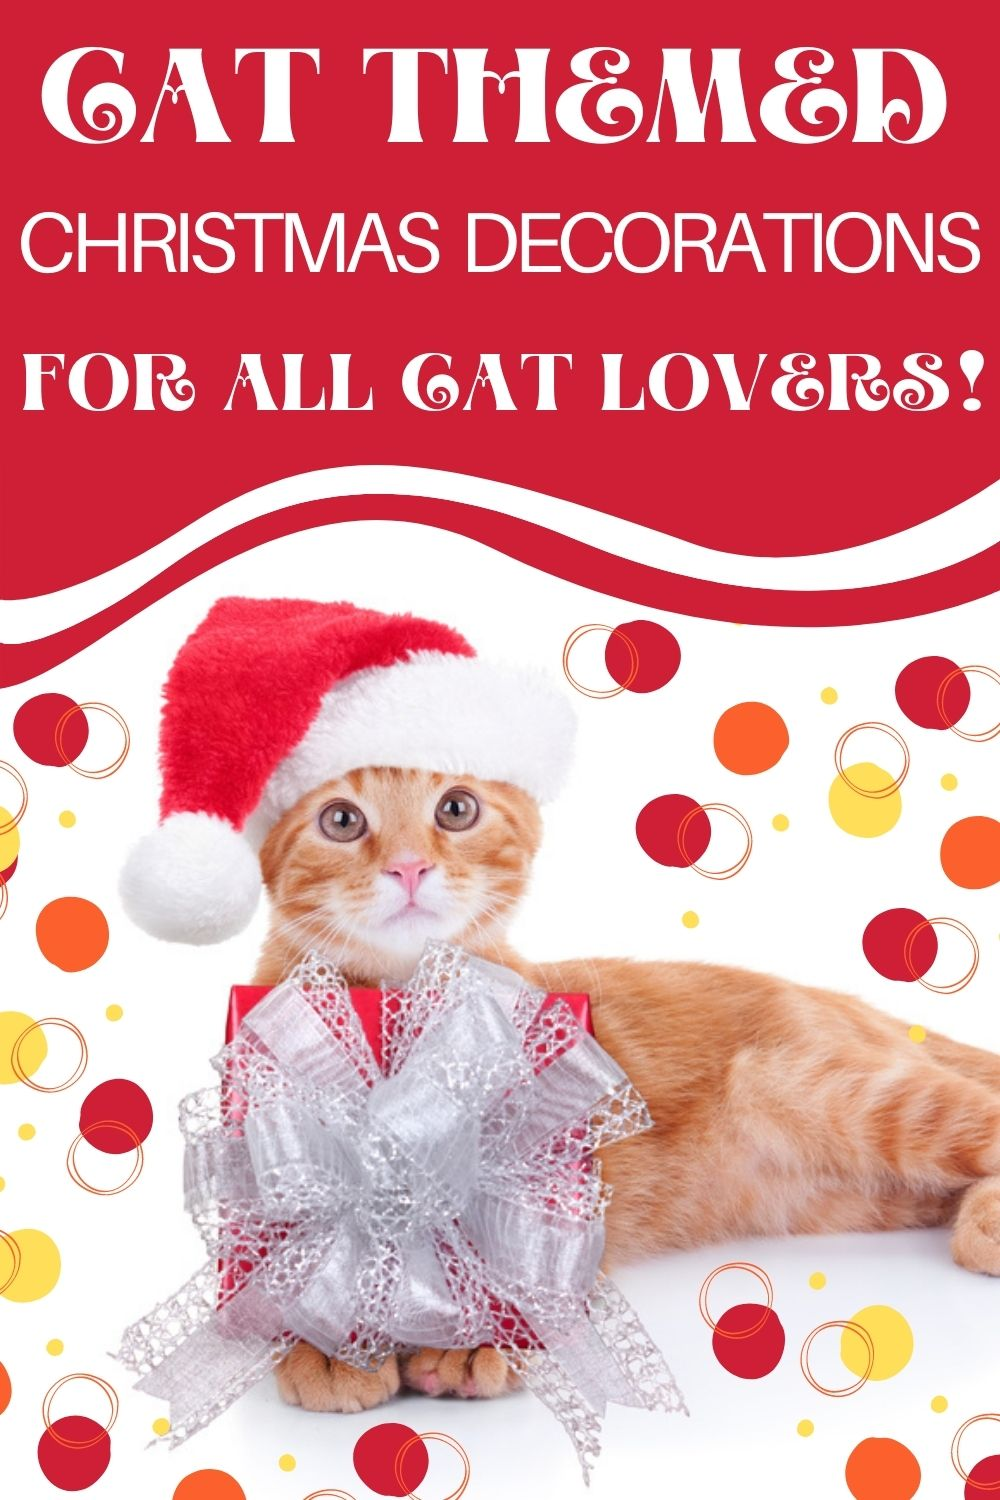 Cat Themed Christmas Decorations